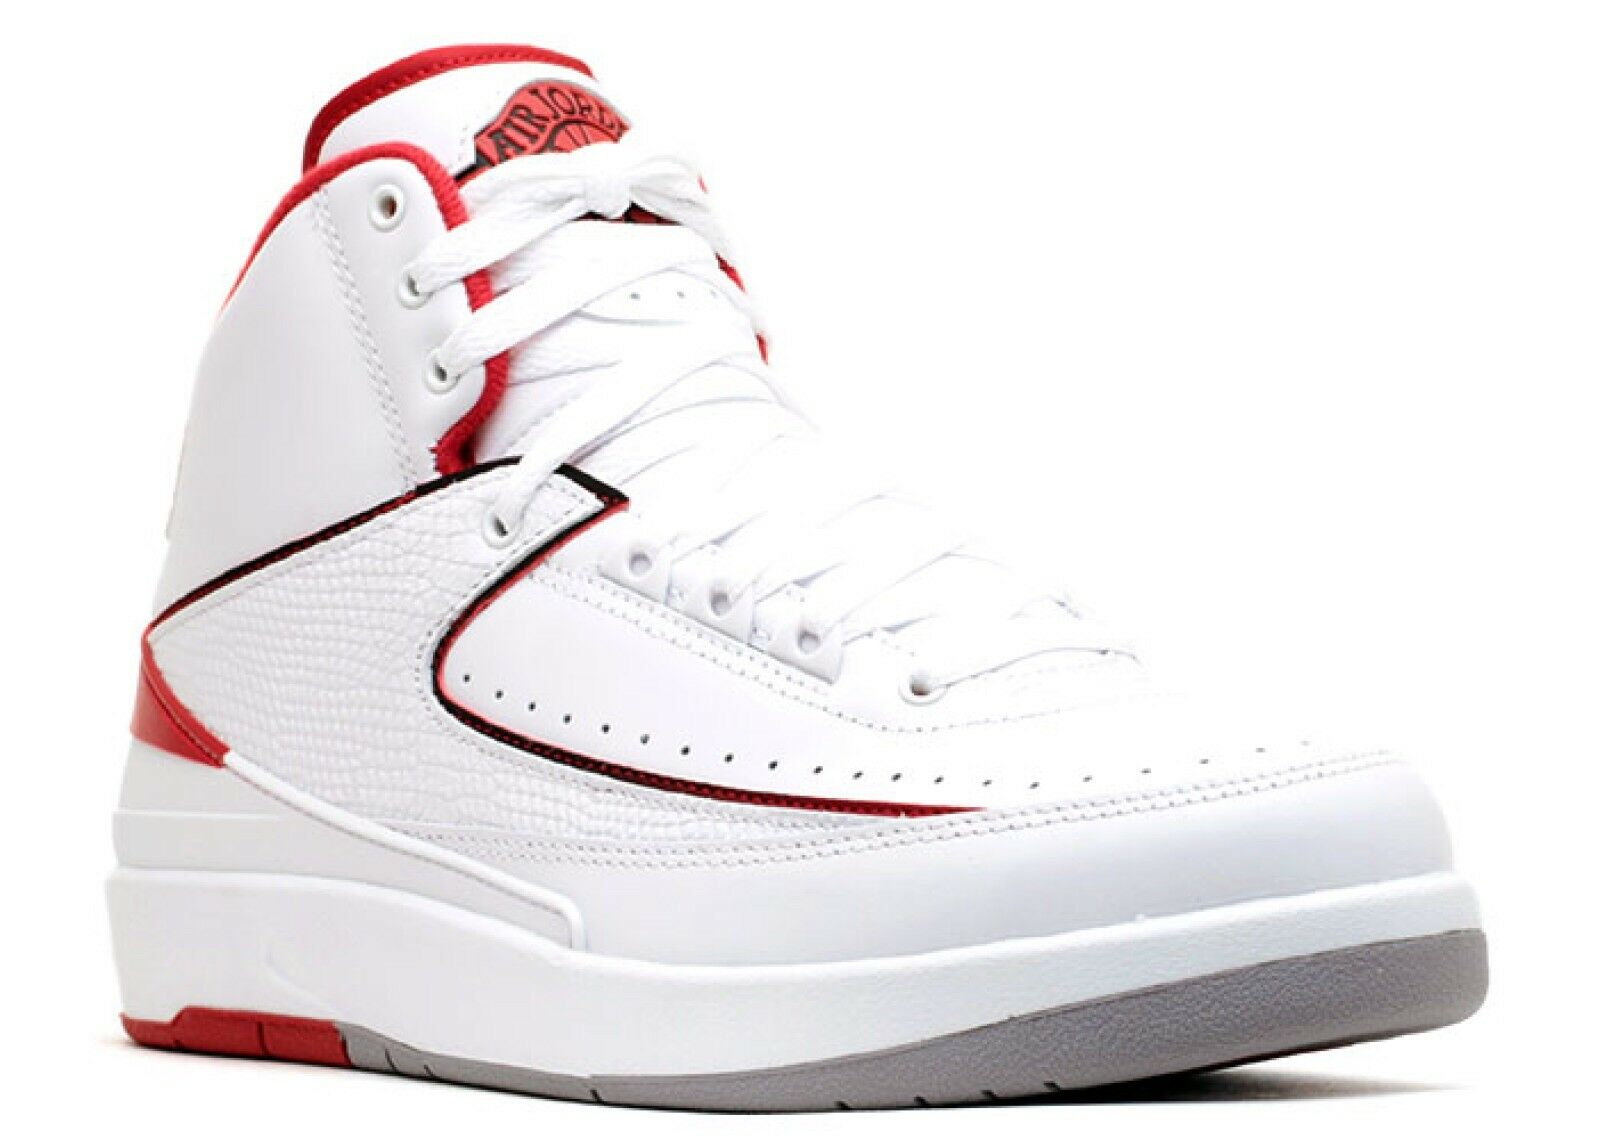 Retro Jordan 2. Red and white. Size 8. DEADSTOCK   Rare find. 100% Authentic.